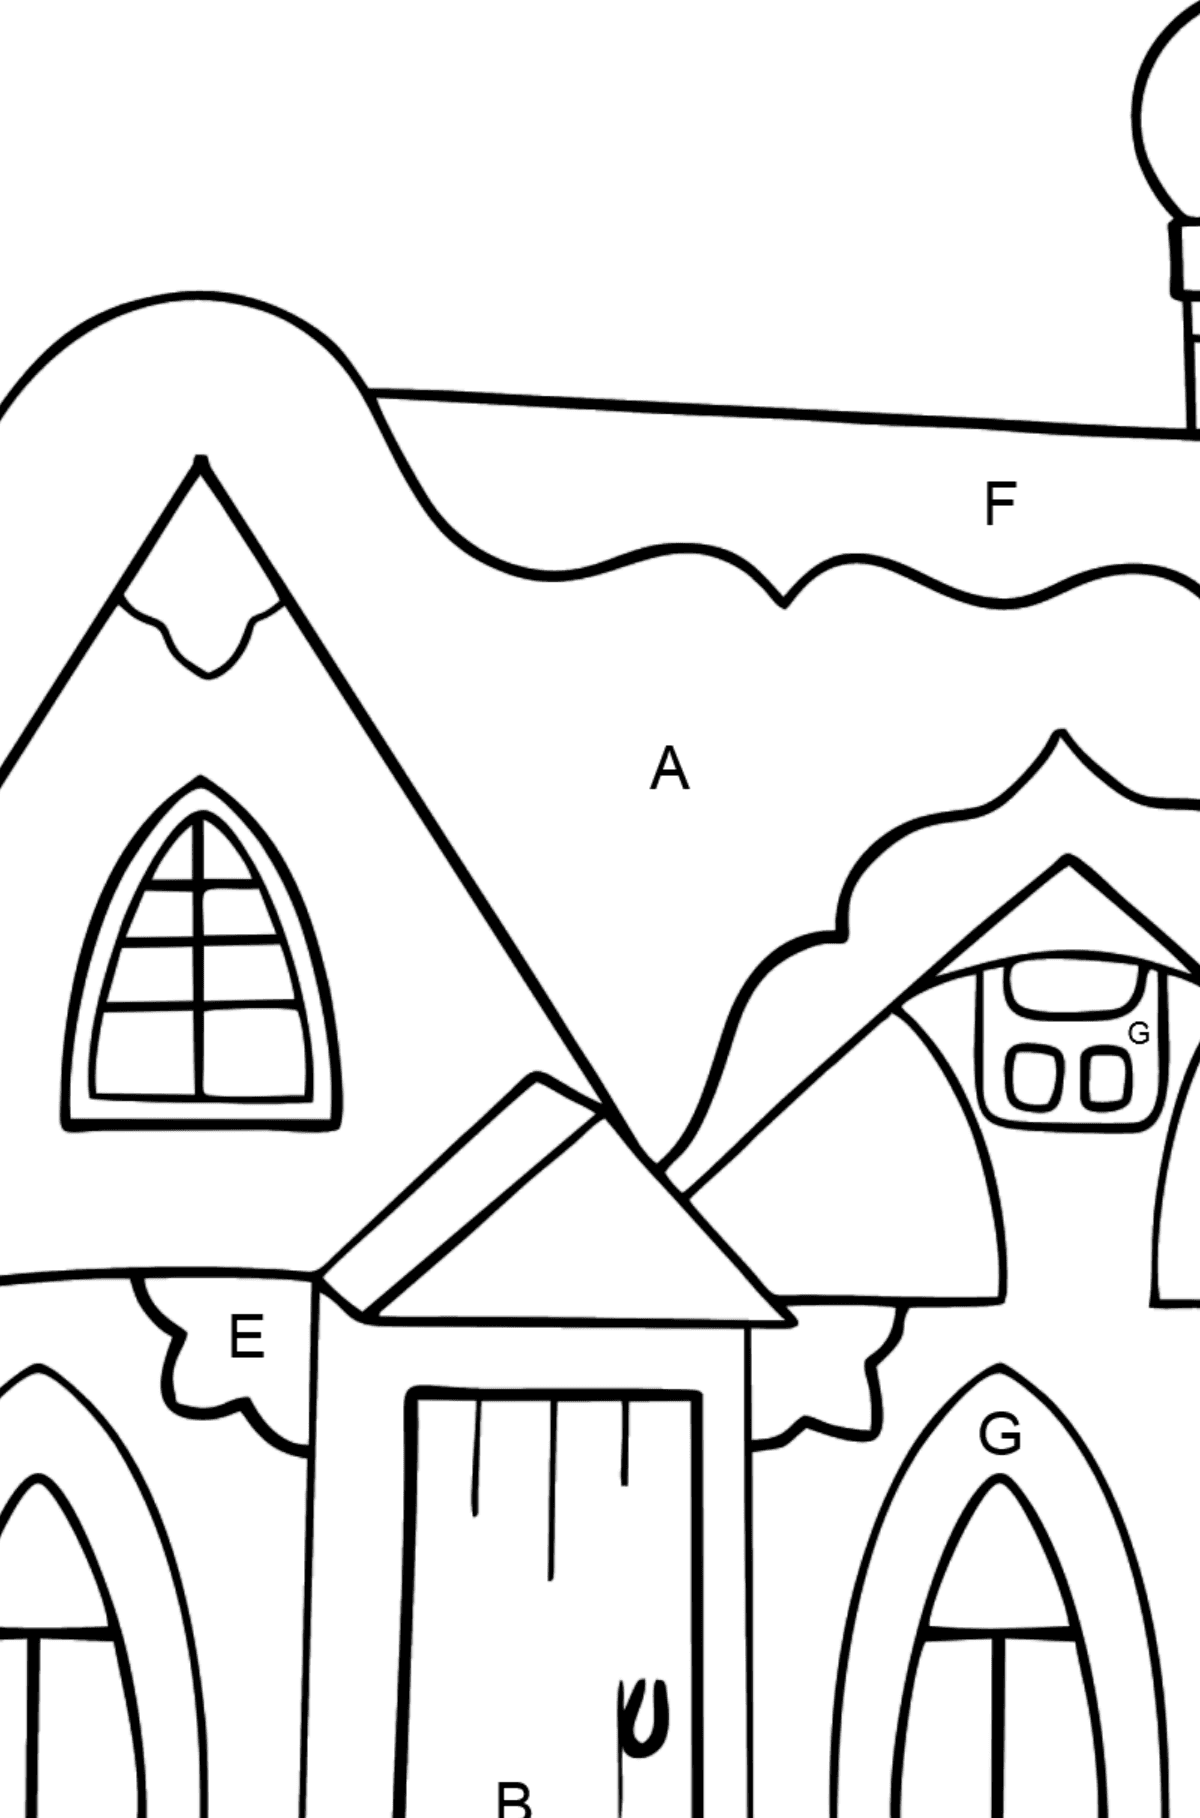 Simple Coloring Page - A Fairytale House - Coloring by Letters for Kids